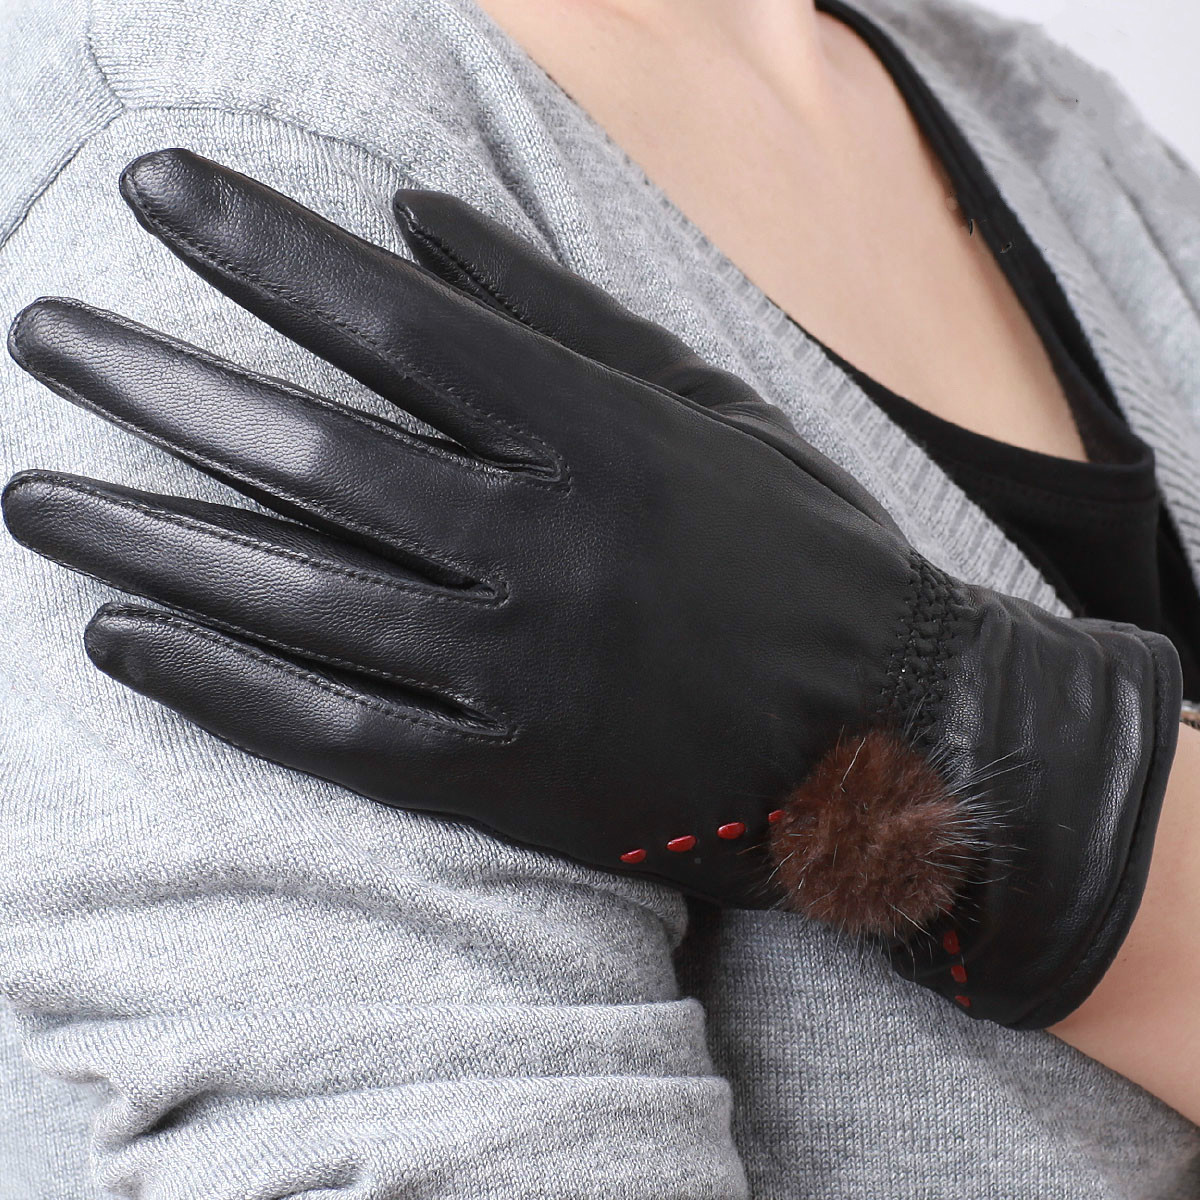 Ladies leather cycling gloves - Ladies Genuine Leather Gloves Fur Sheepskin Gloves Outdoor Cycling Gloves Winter Women Fashion Gloves Black 2